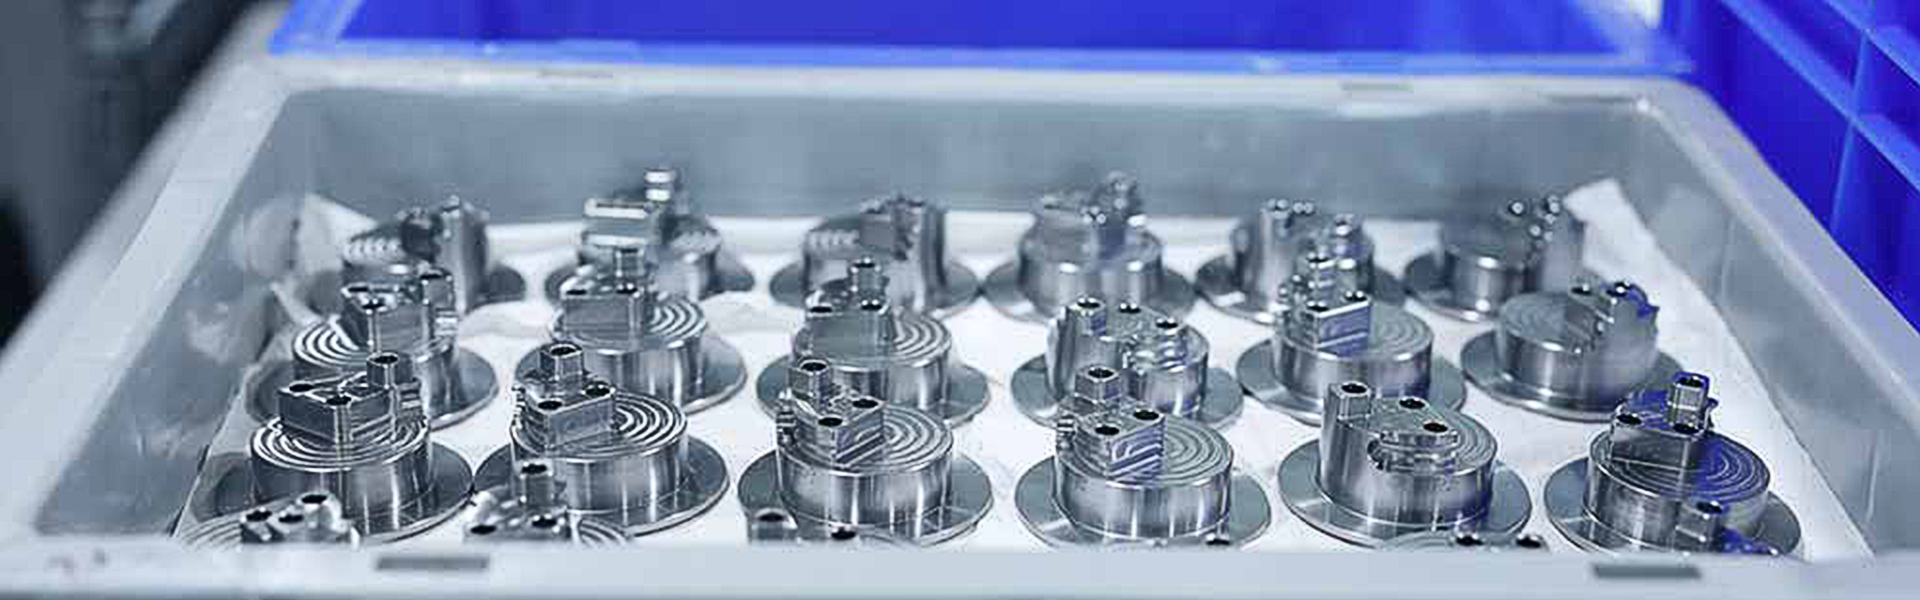 Know the Usability of Precision Machining Through These CNC Machine-Produced Items